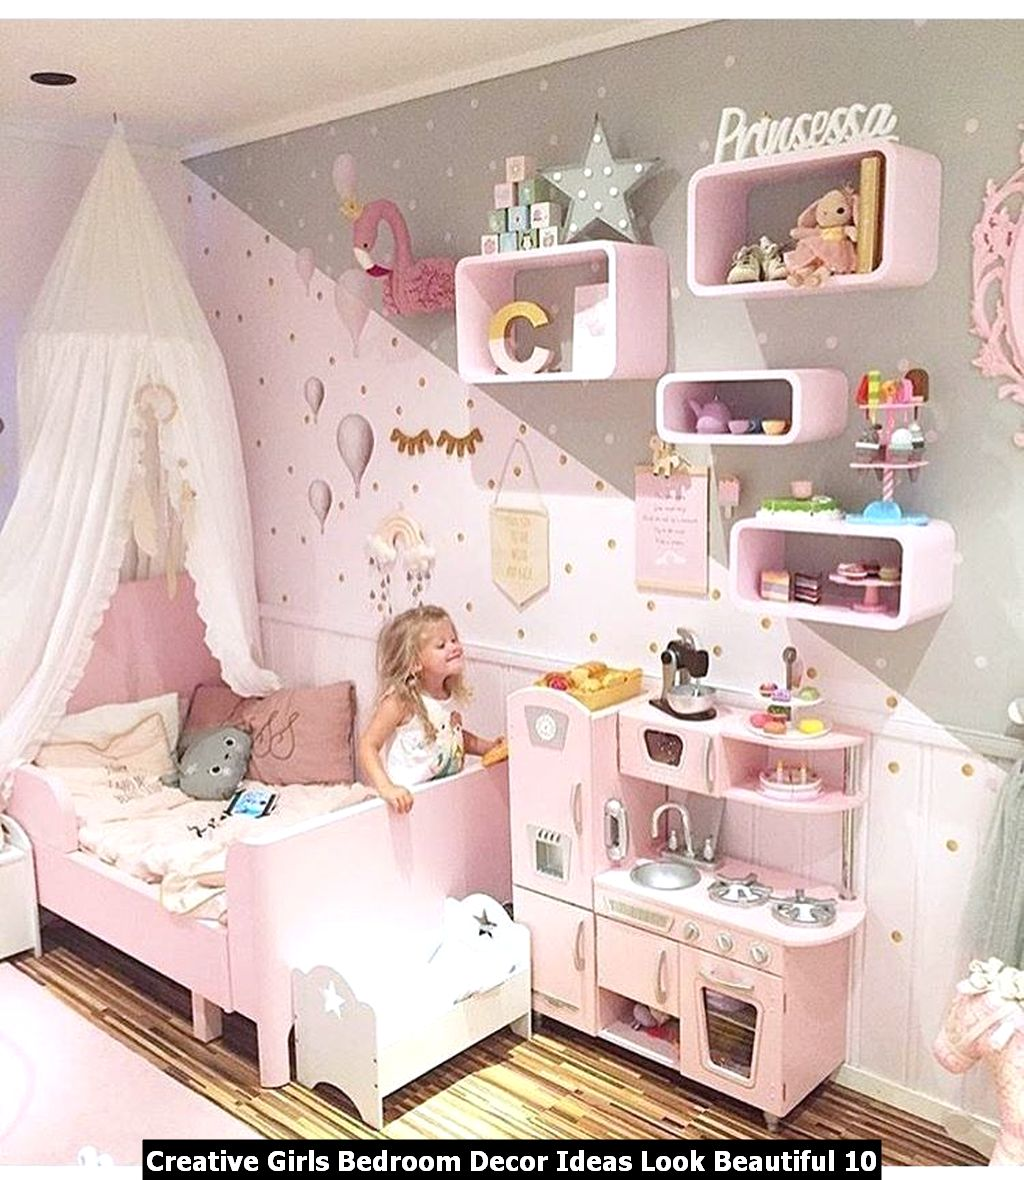 Creative Girls Bedroom Decor Ideas Look Beautiful 10